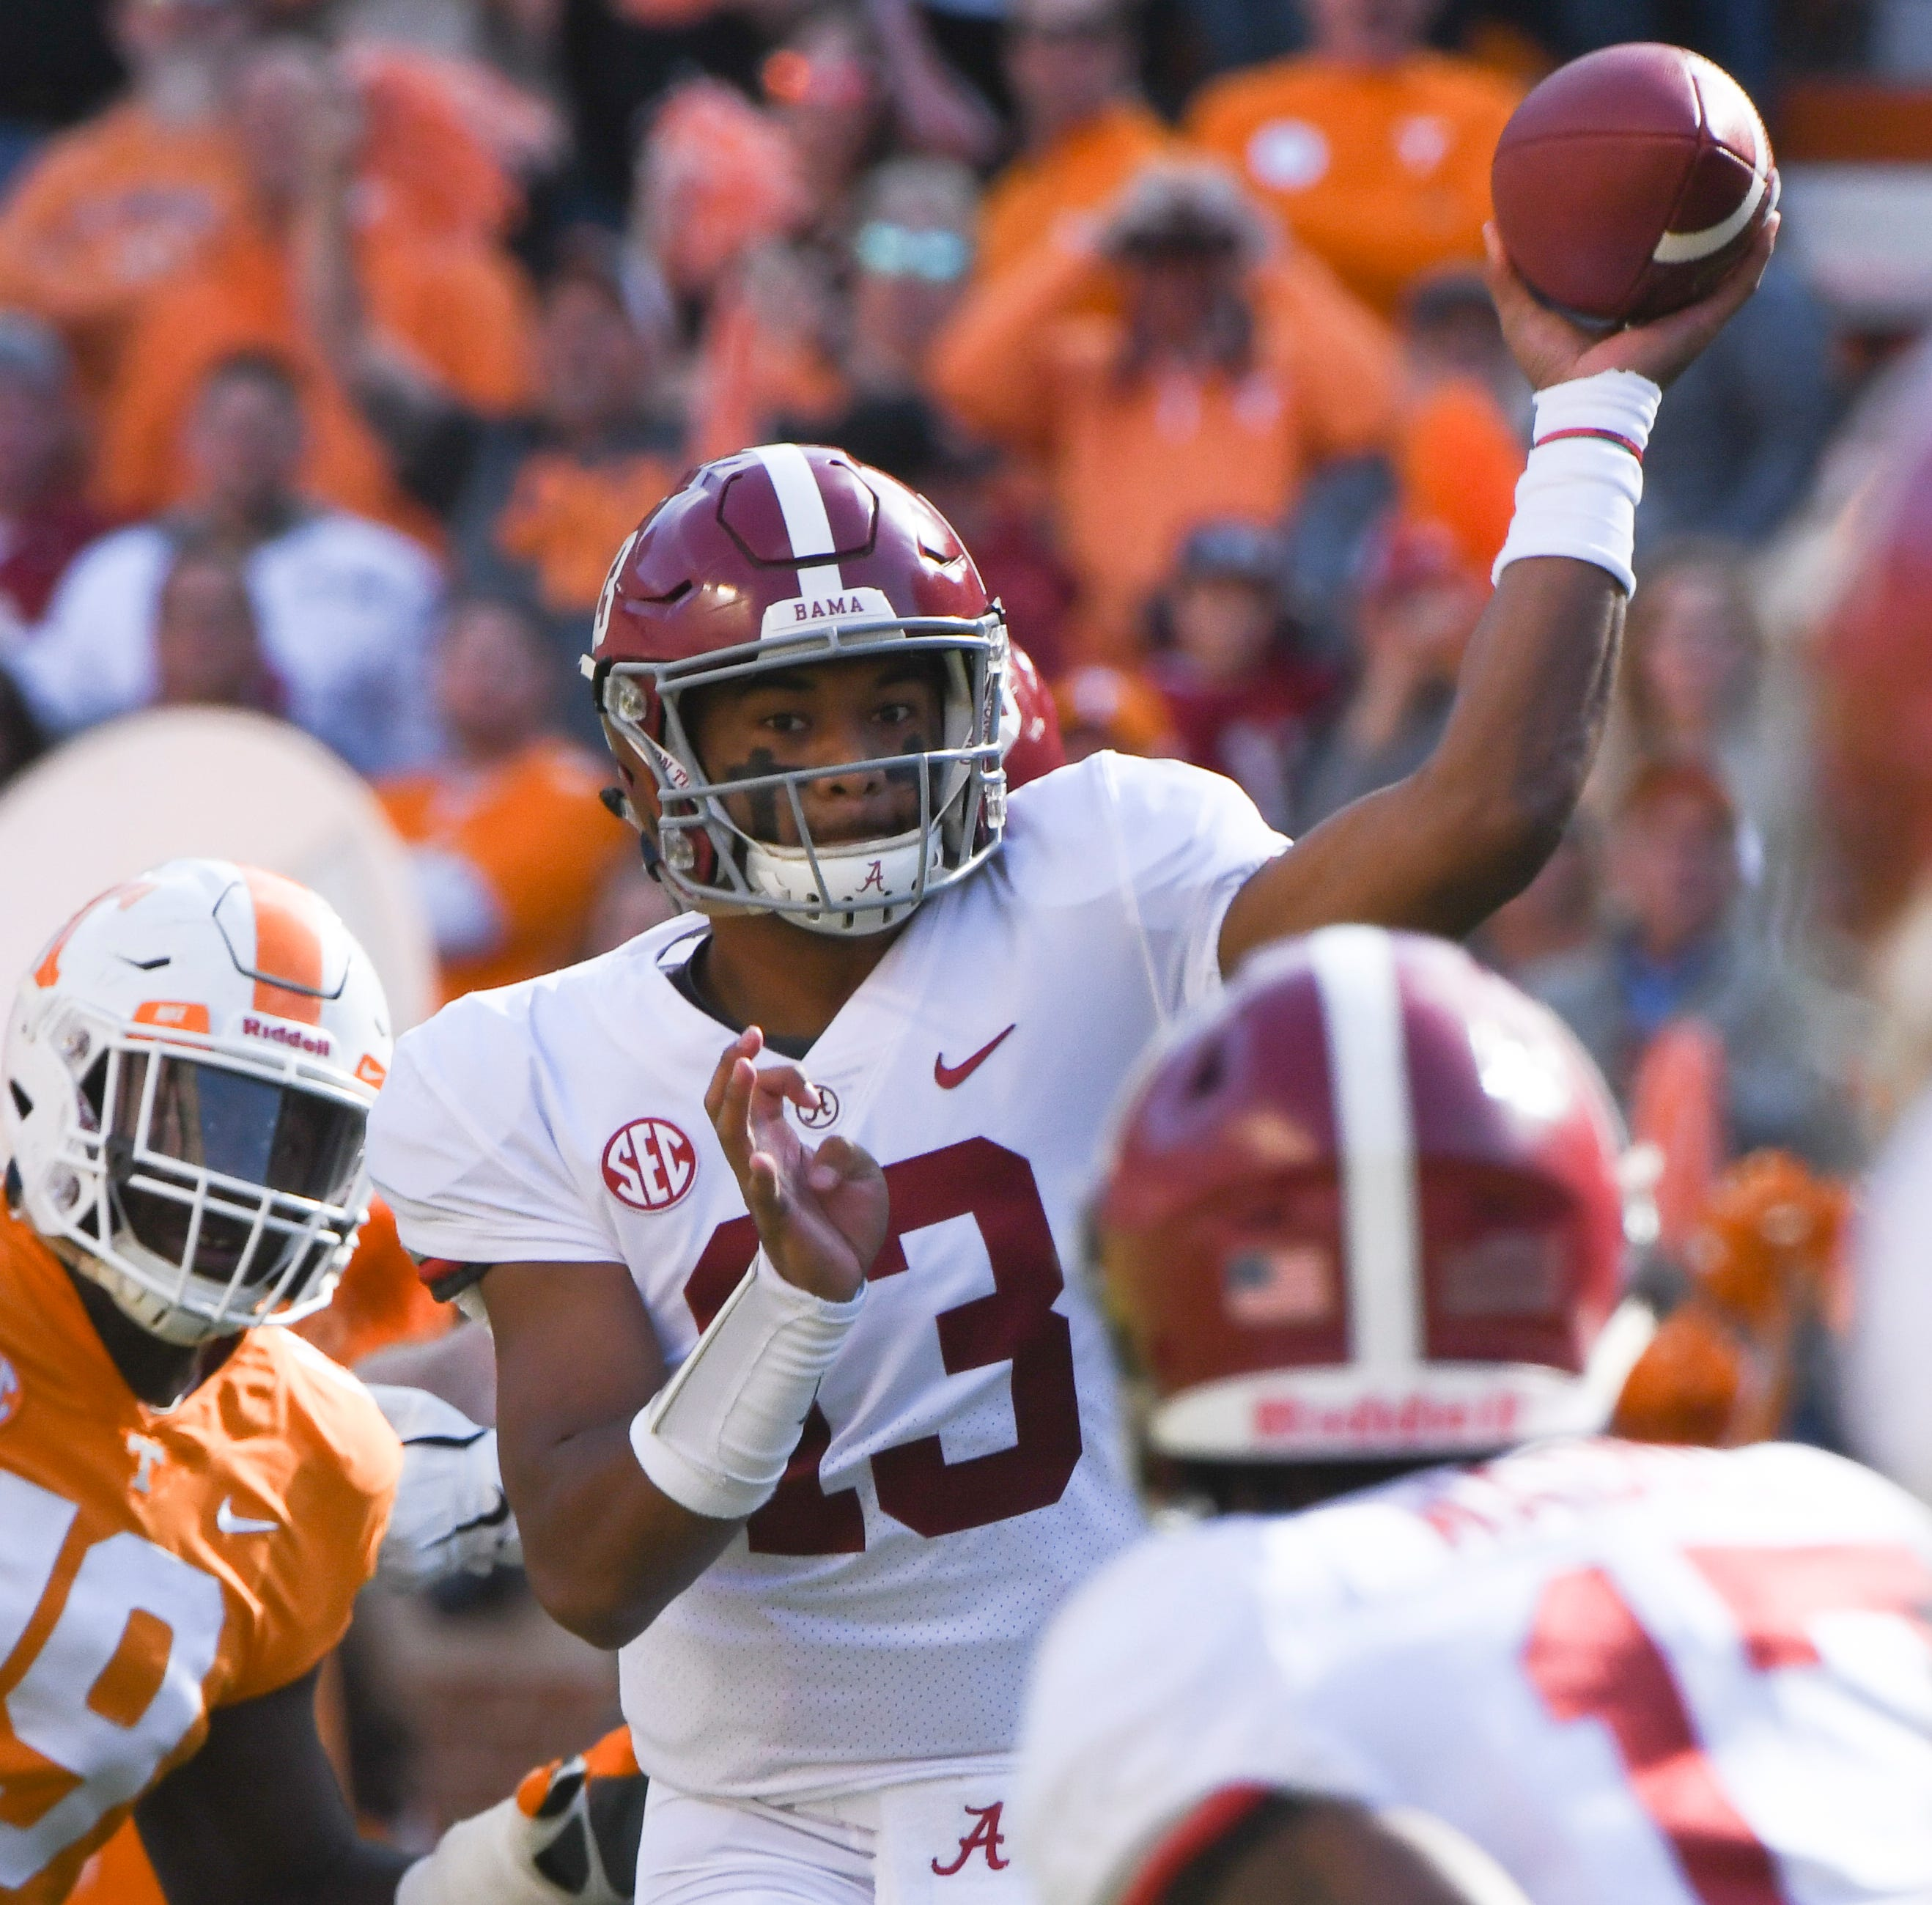 How UT Vols lost to Alabama 58-21